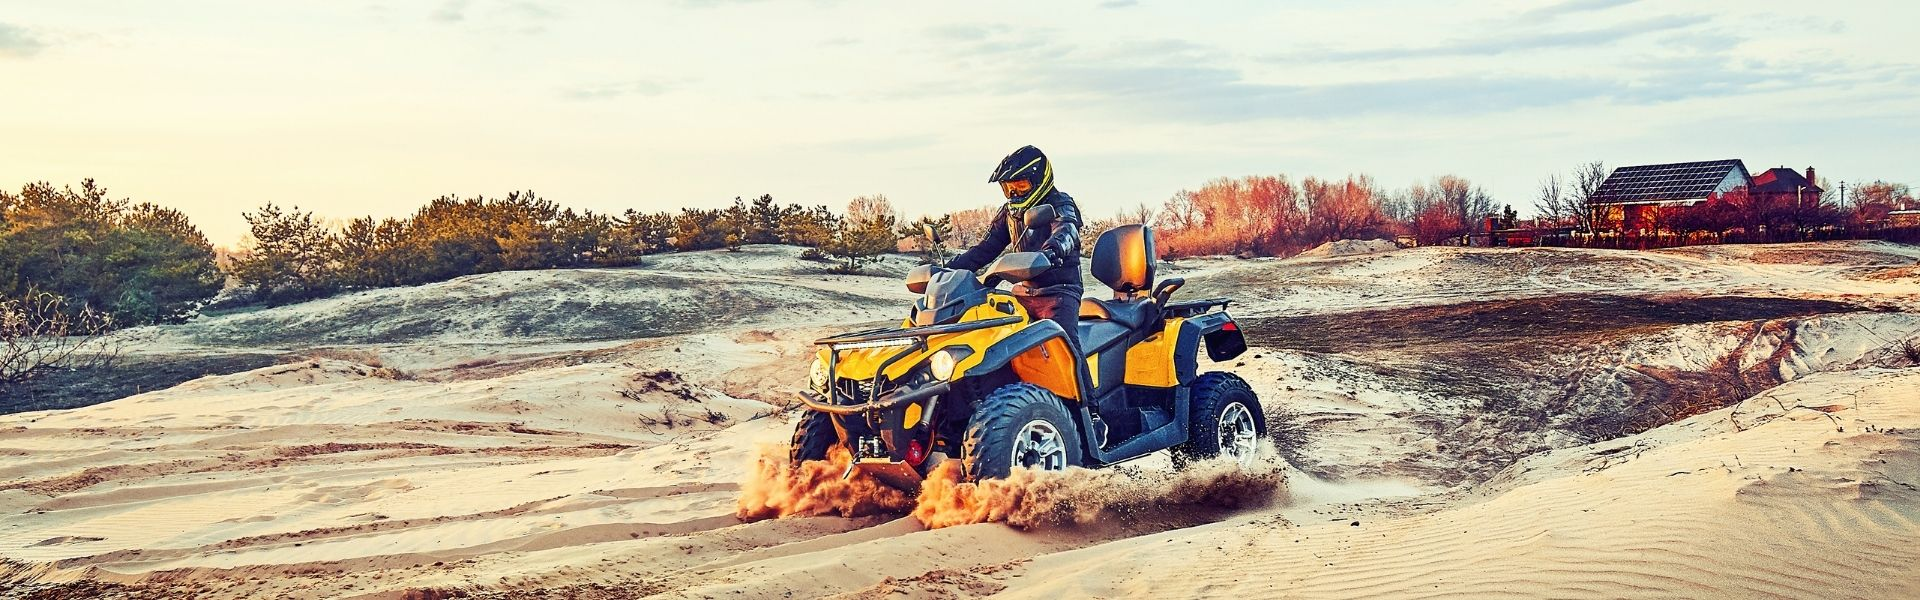 ATV Rental in Kherson